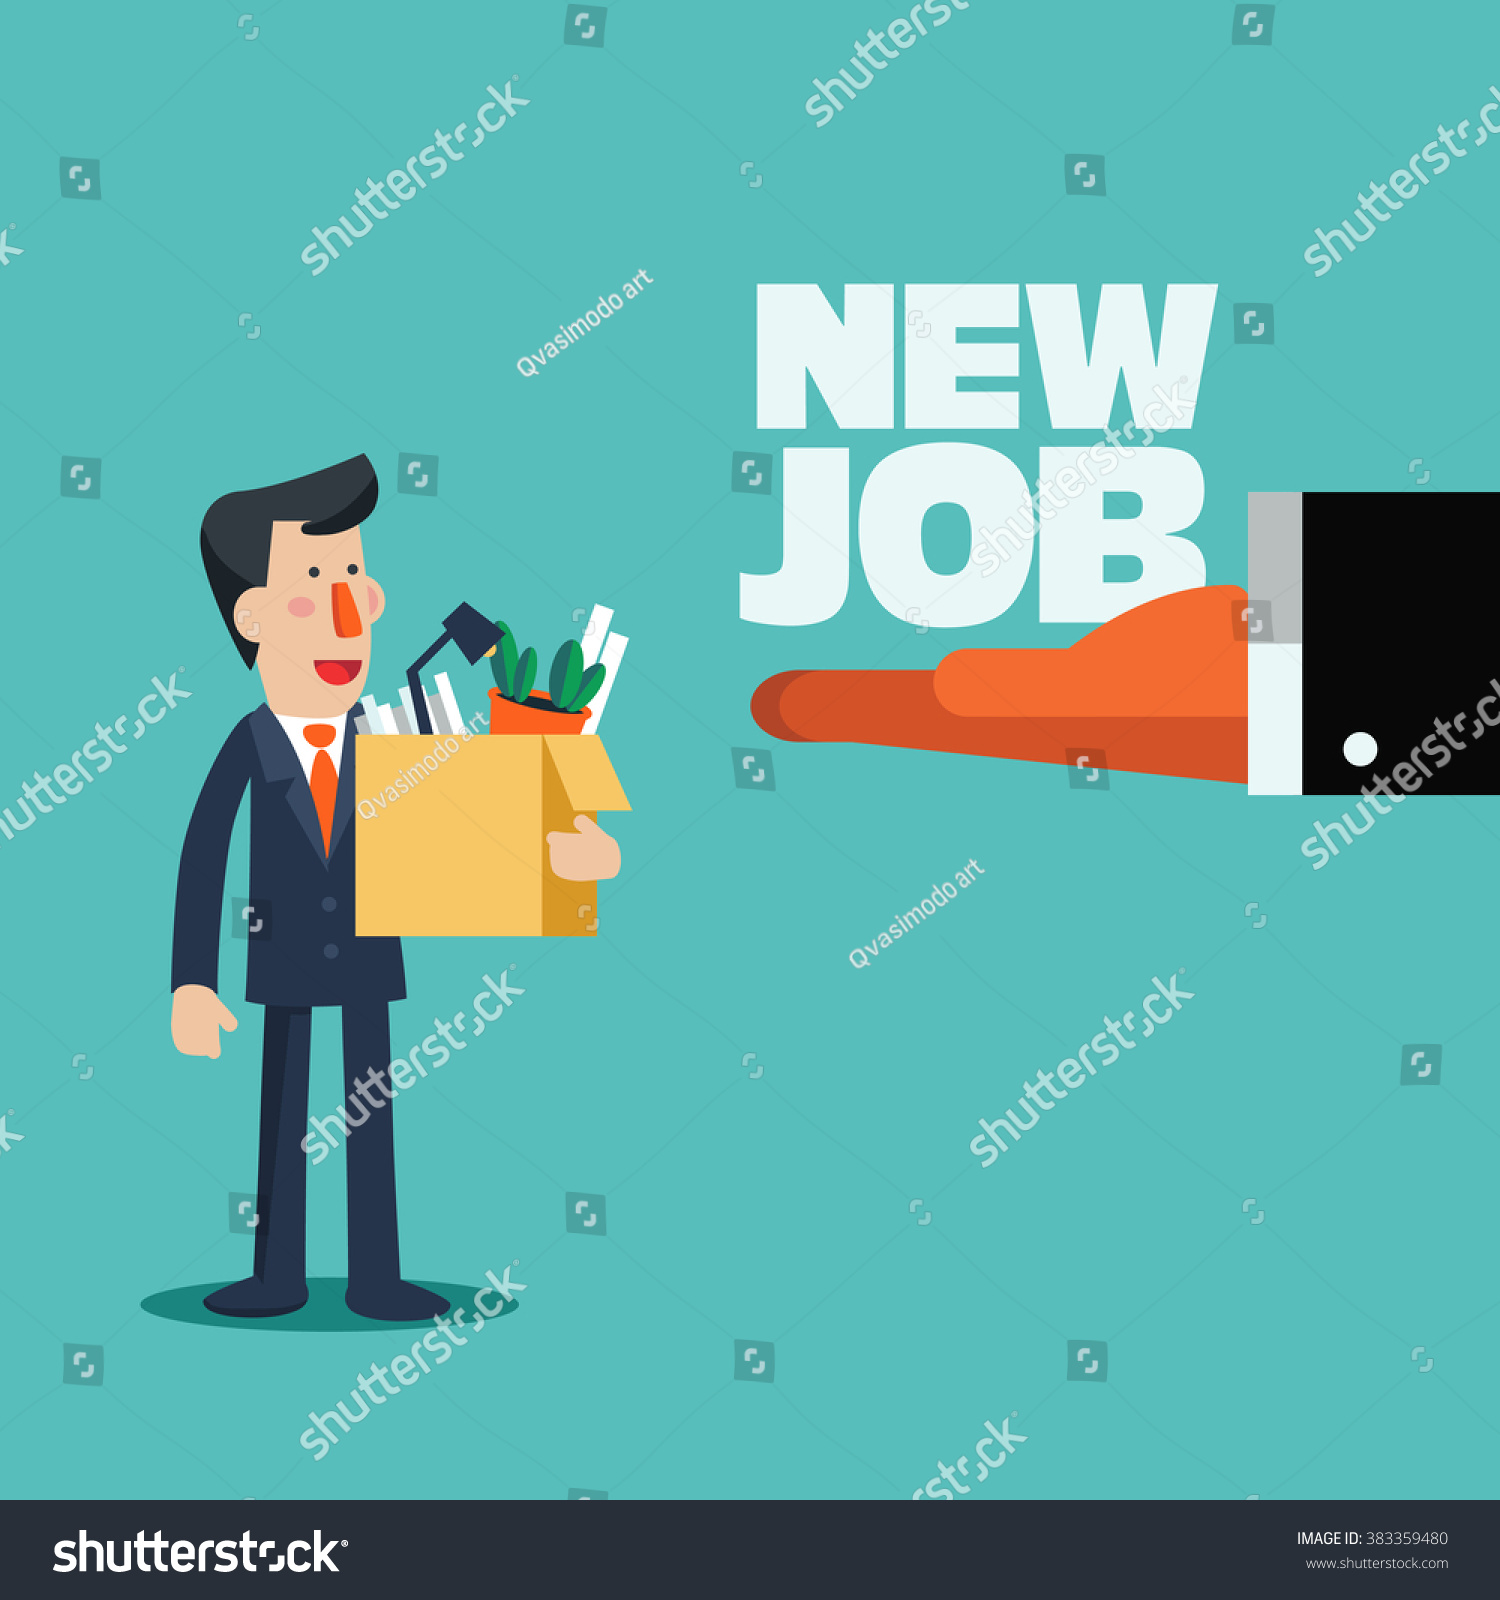 welcome new job vector business concept stock vector  welcome to the new job vector business concept boss offering a new job to employee